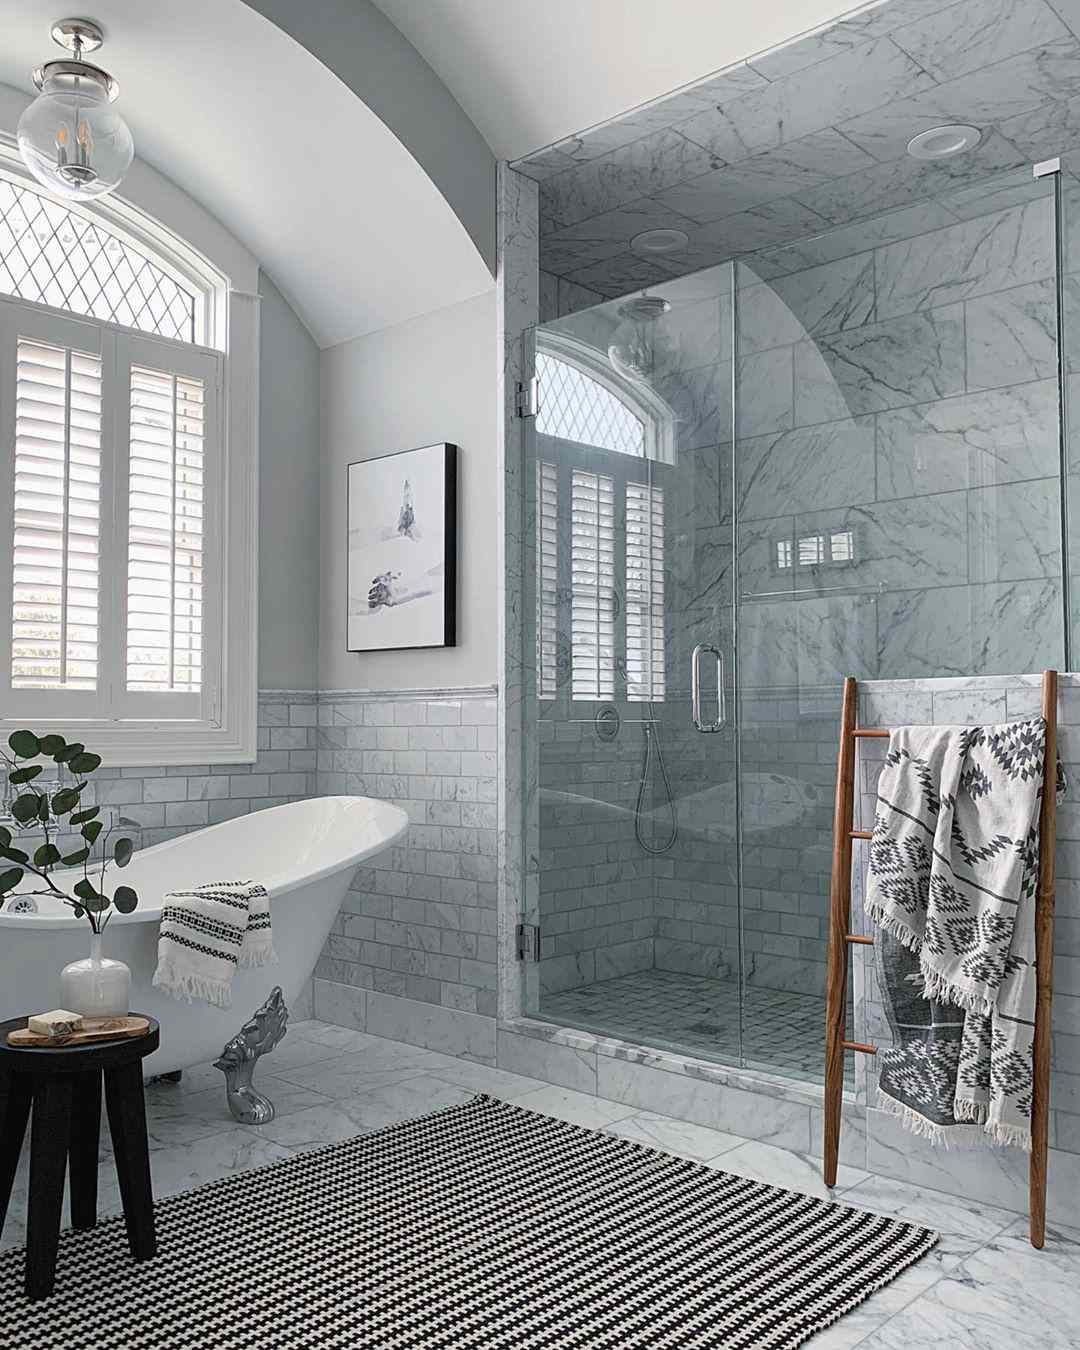 Bathroom with floor to ceiling tiles